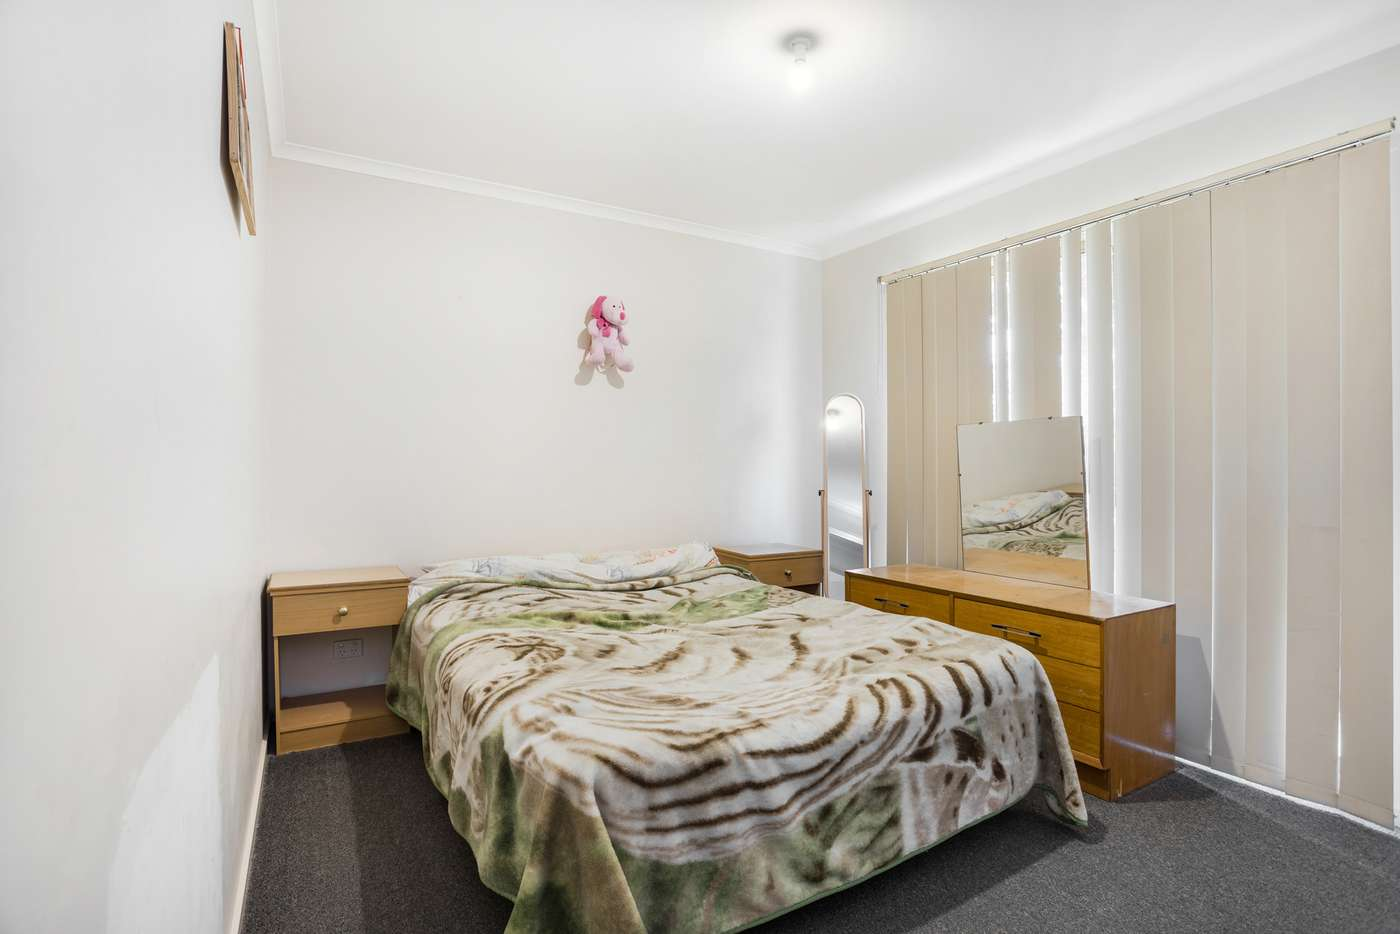 Fifth view of Homely house listing, 123 Murphy Street, East Bendigo VIC 3550